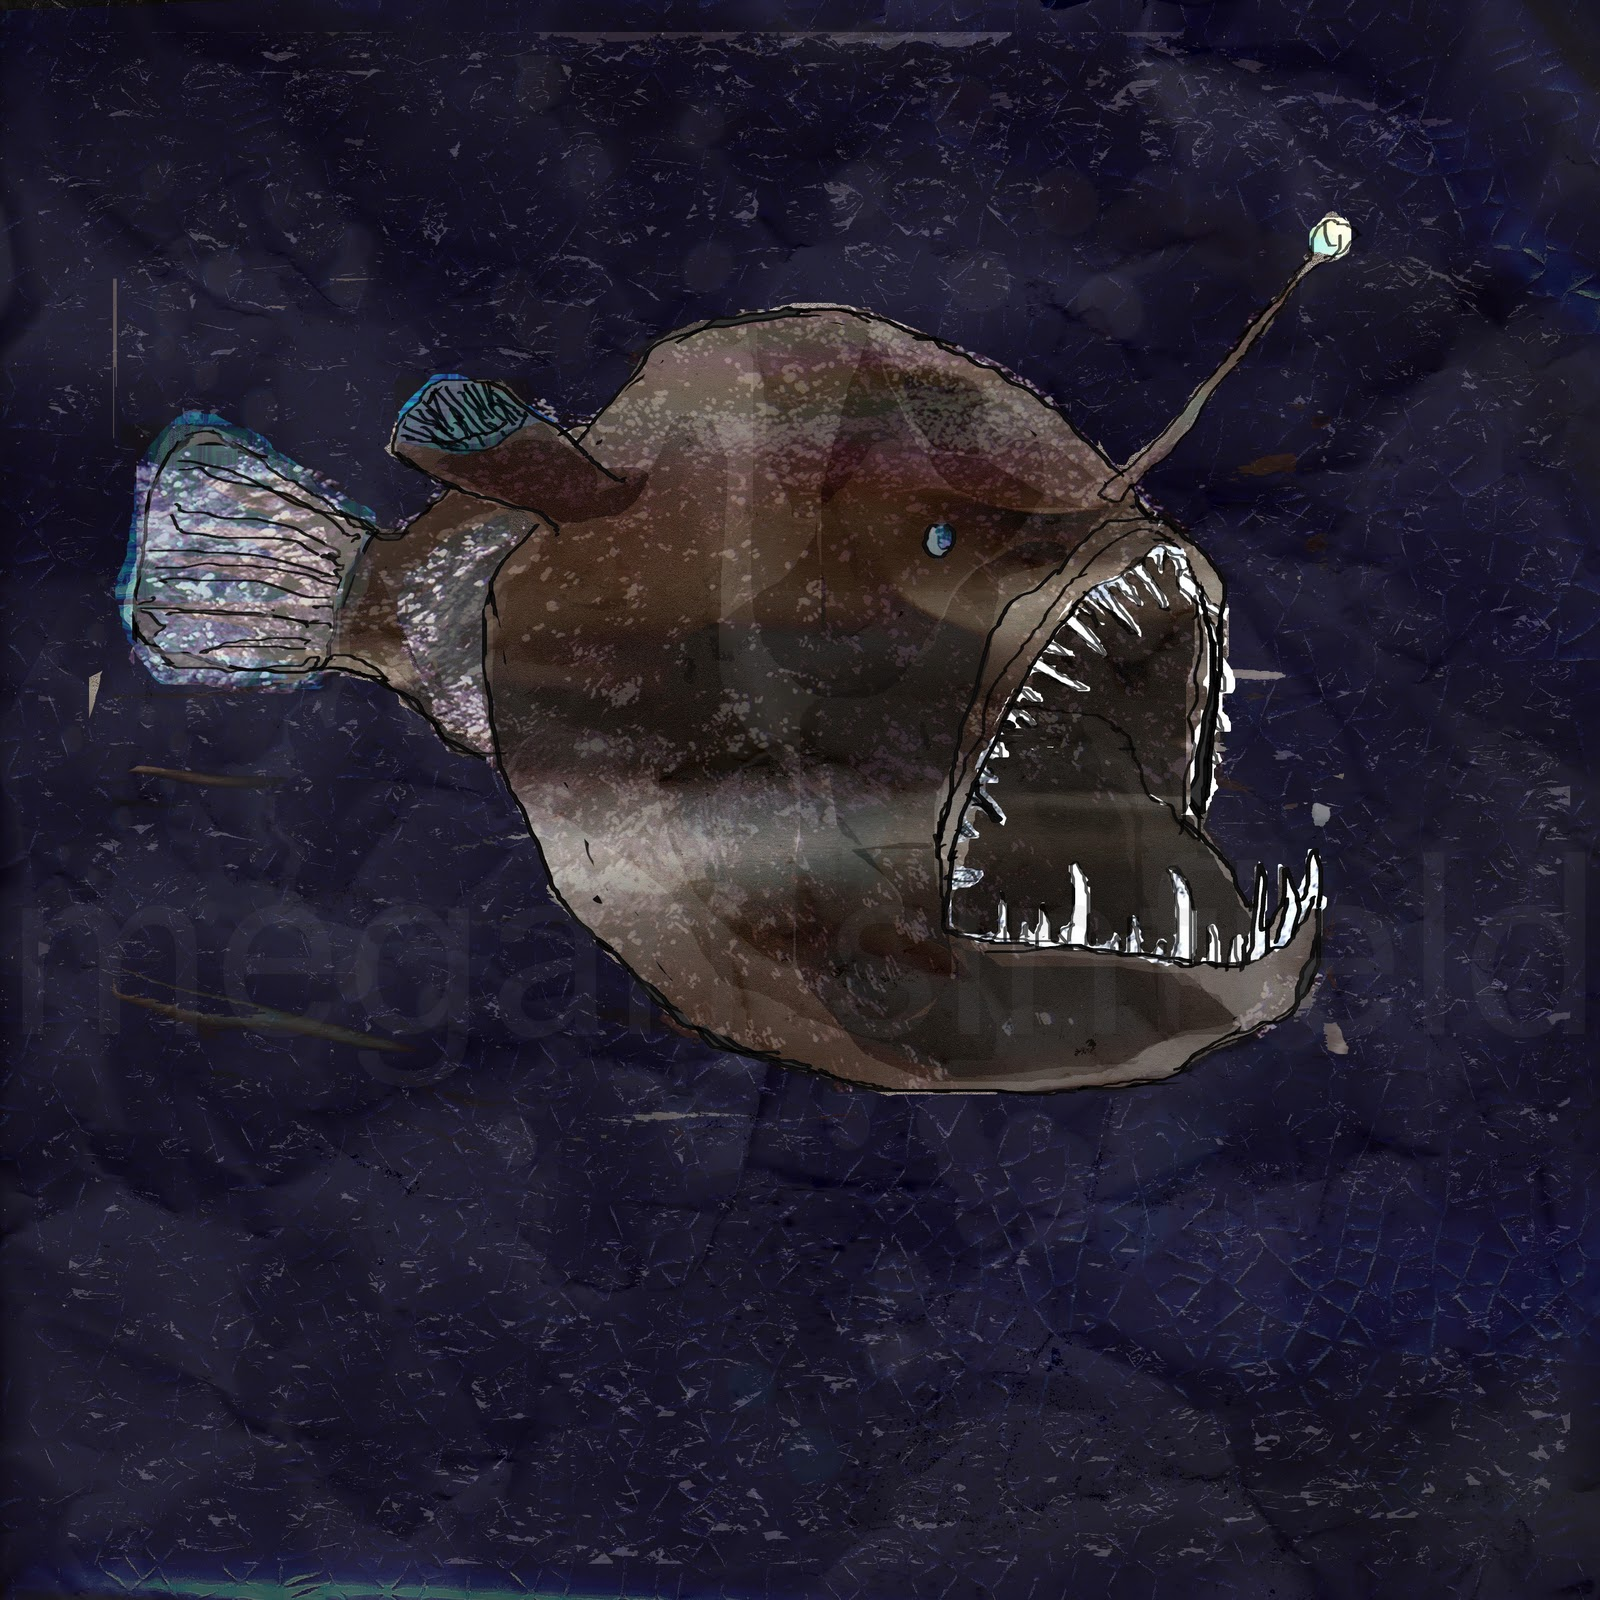 megan sinfield angler fish 2010